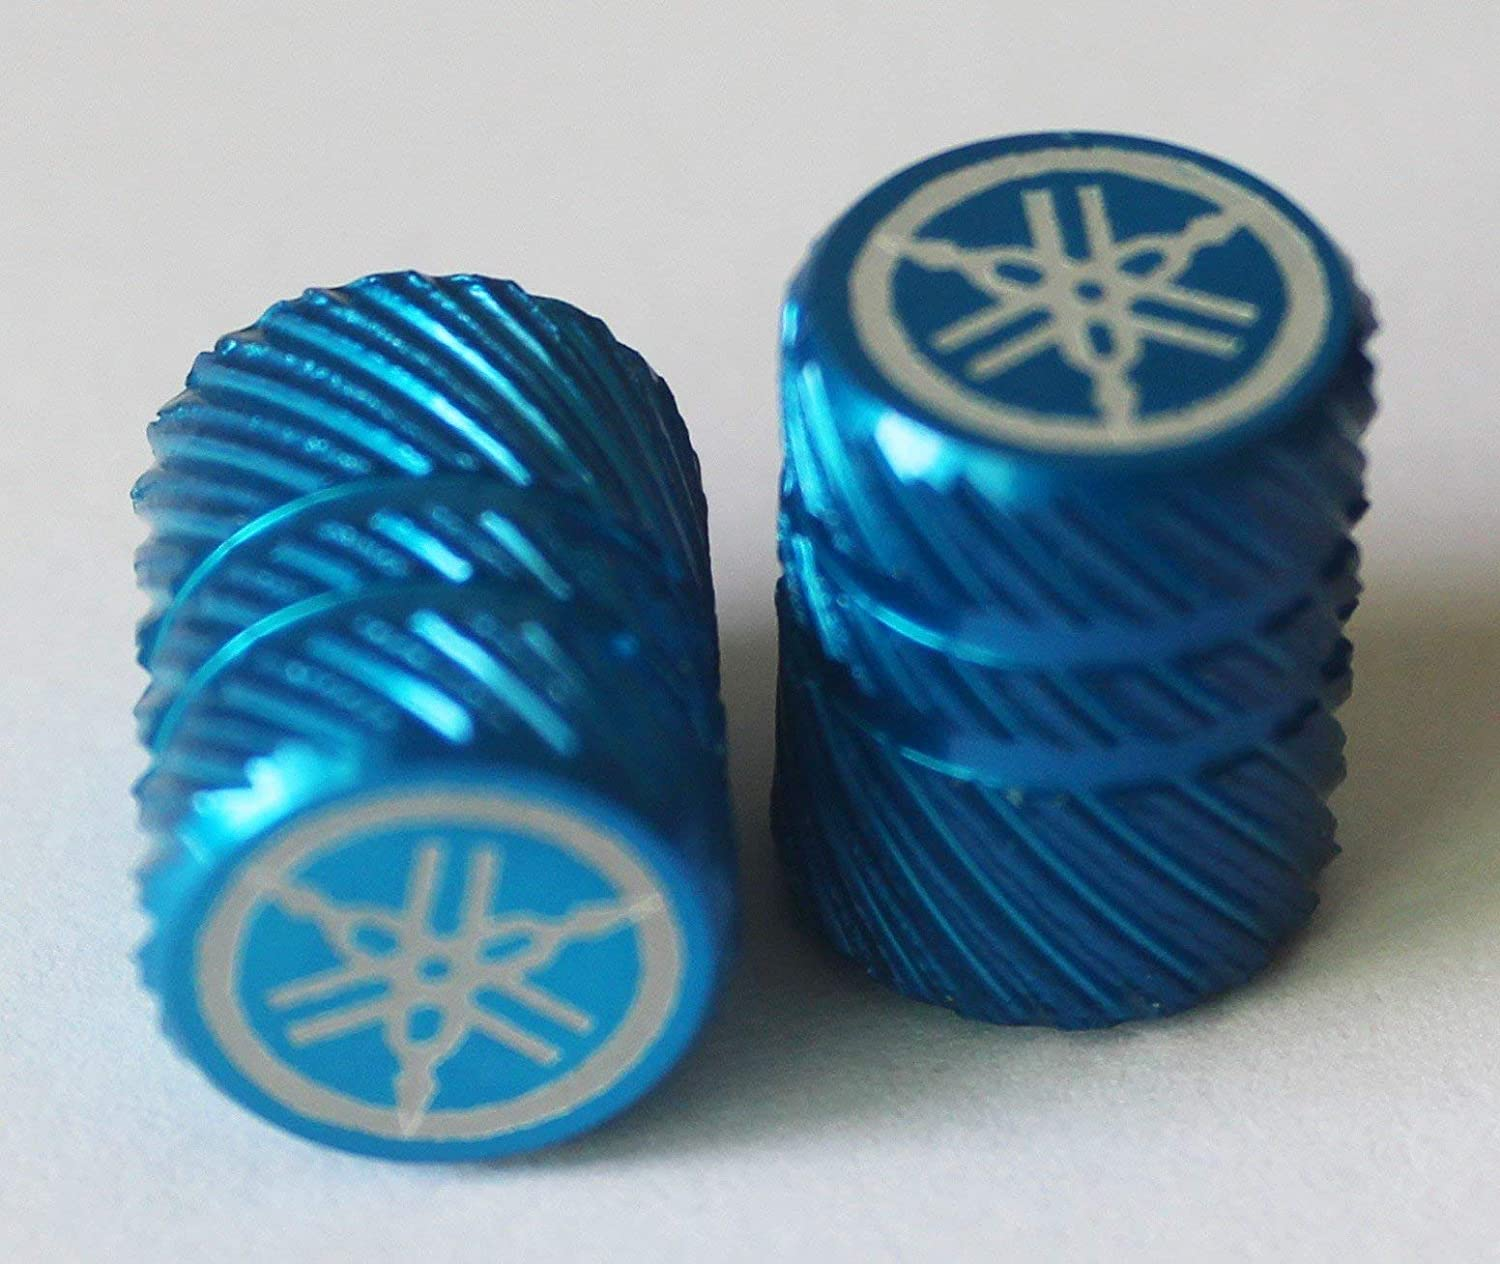 Car ATV Set of 2 GENUINE Yamaha Tuning Fork Half Knurl Finish BLUE Tyre Tire Valve Caps Dust Caps Protectors for Motorcycles Bicycles Van .